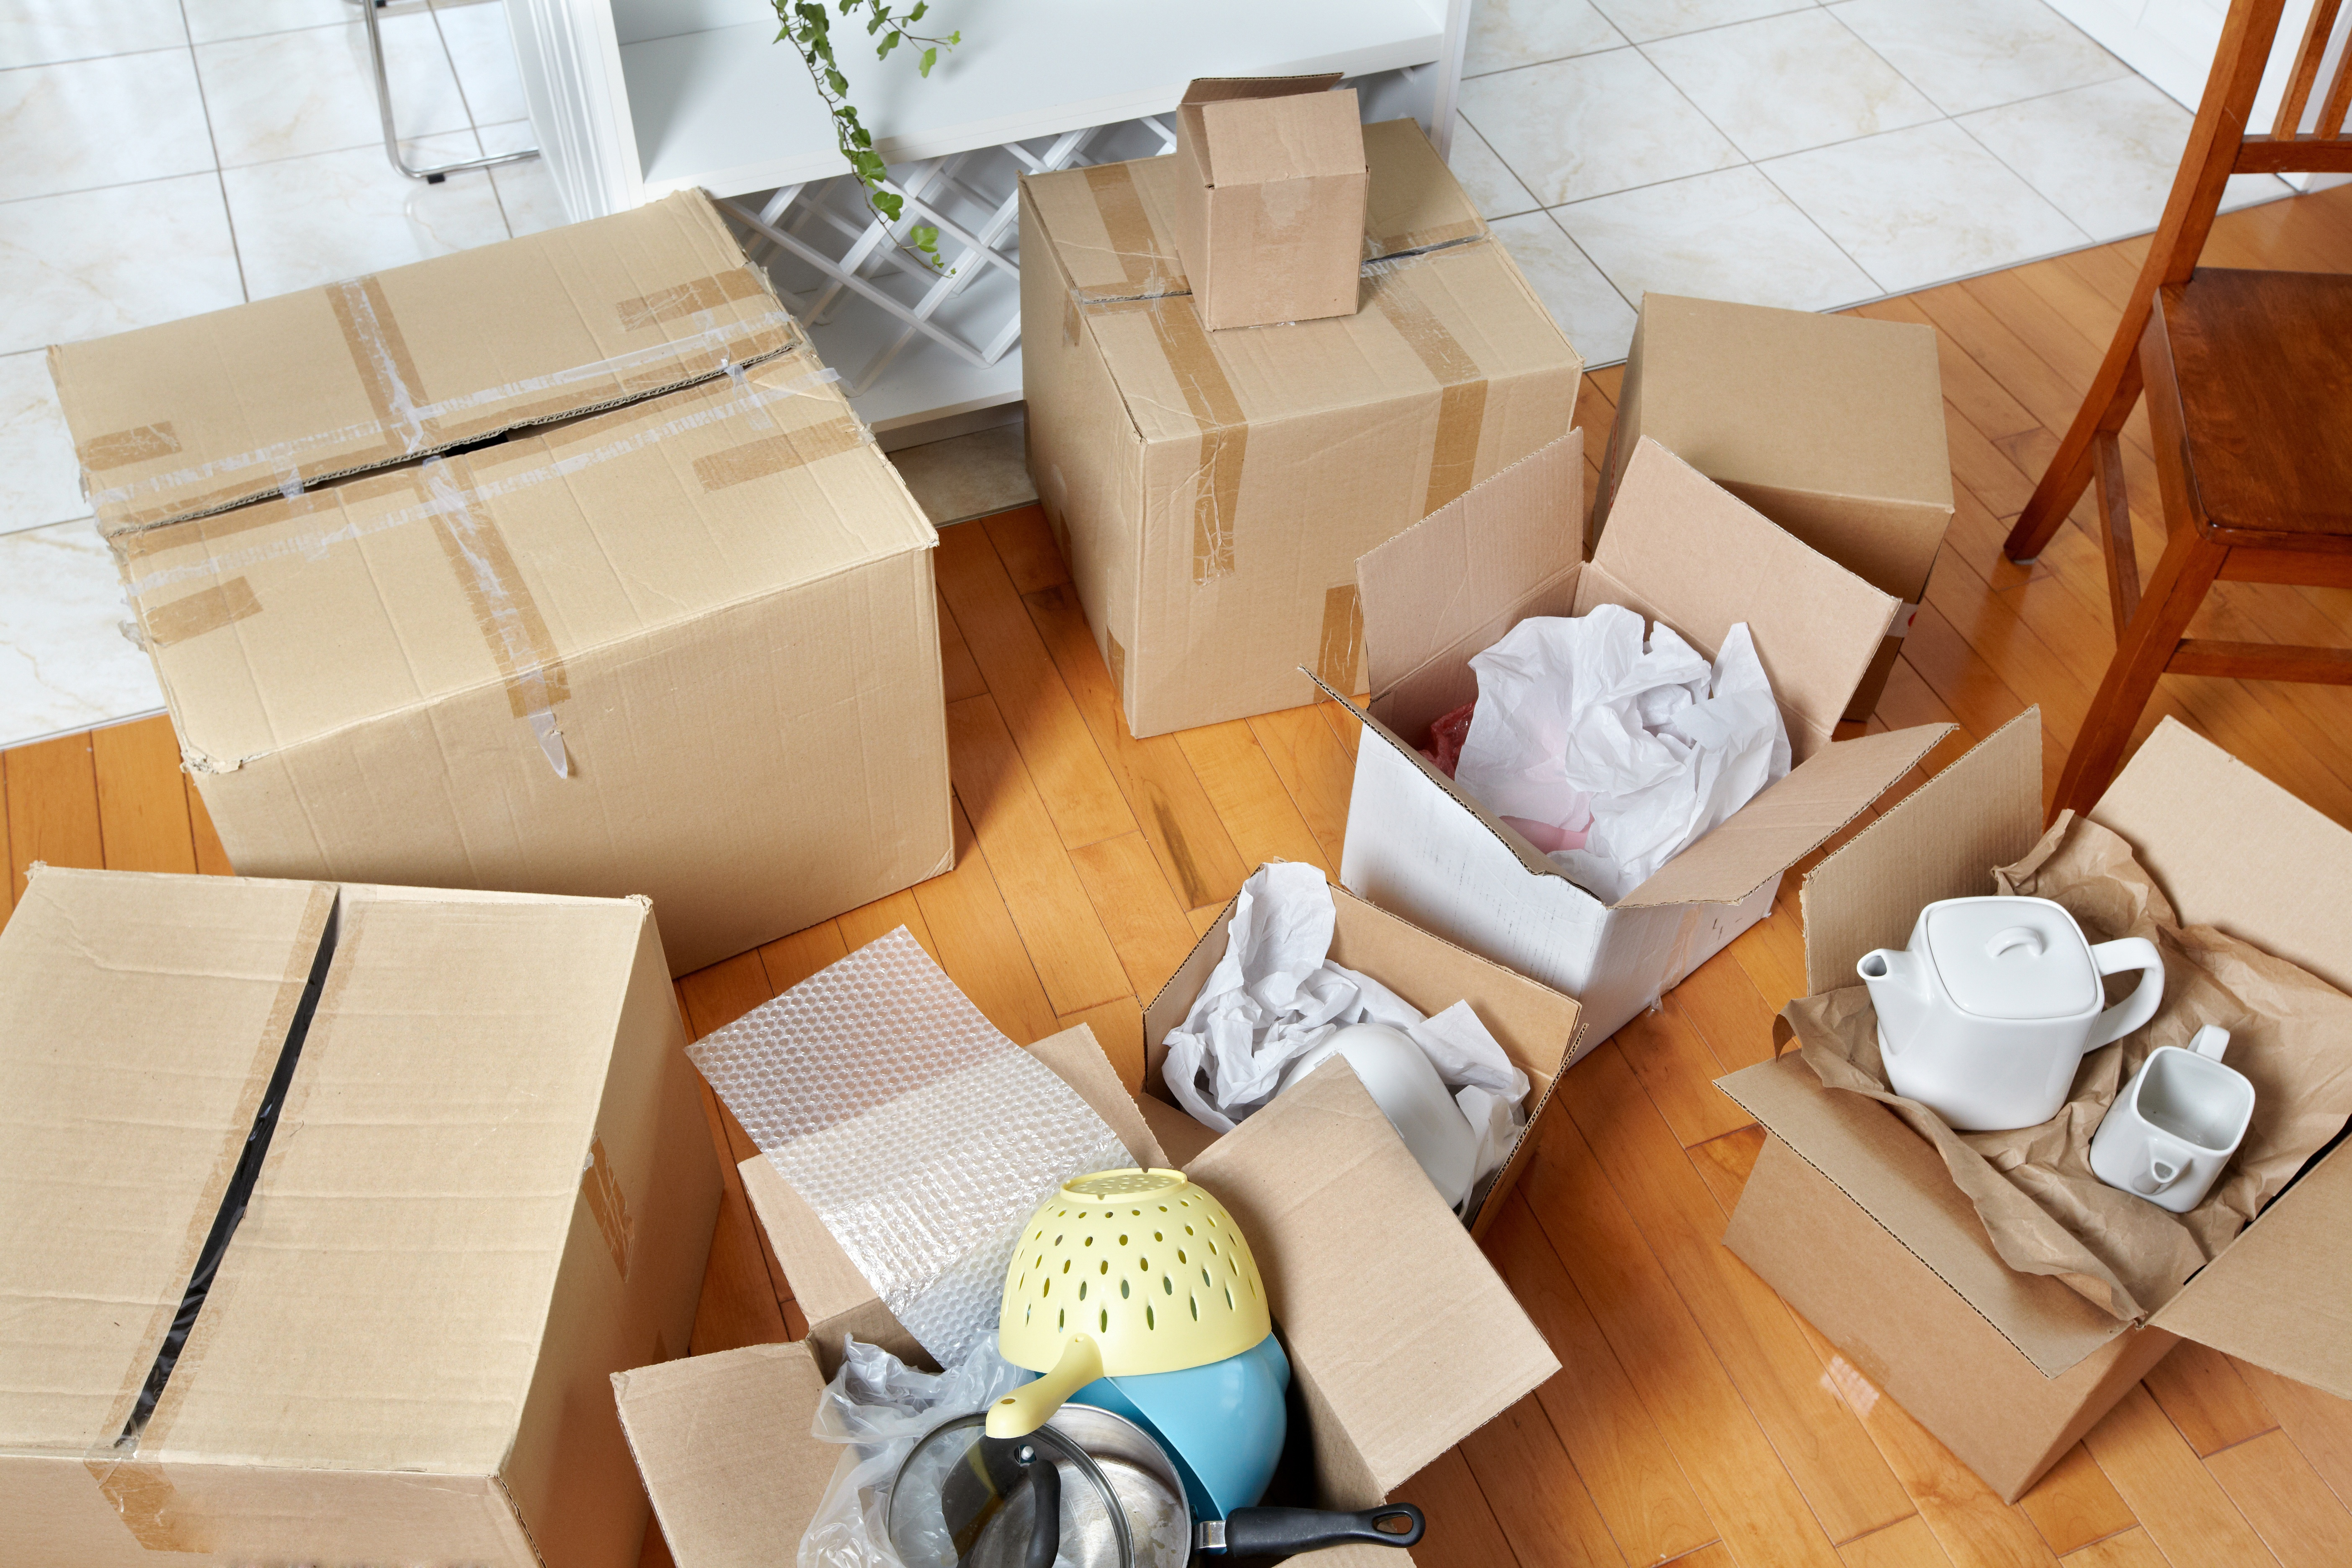 messy_moving_boxes.jpg